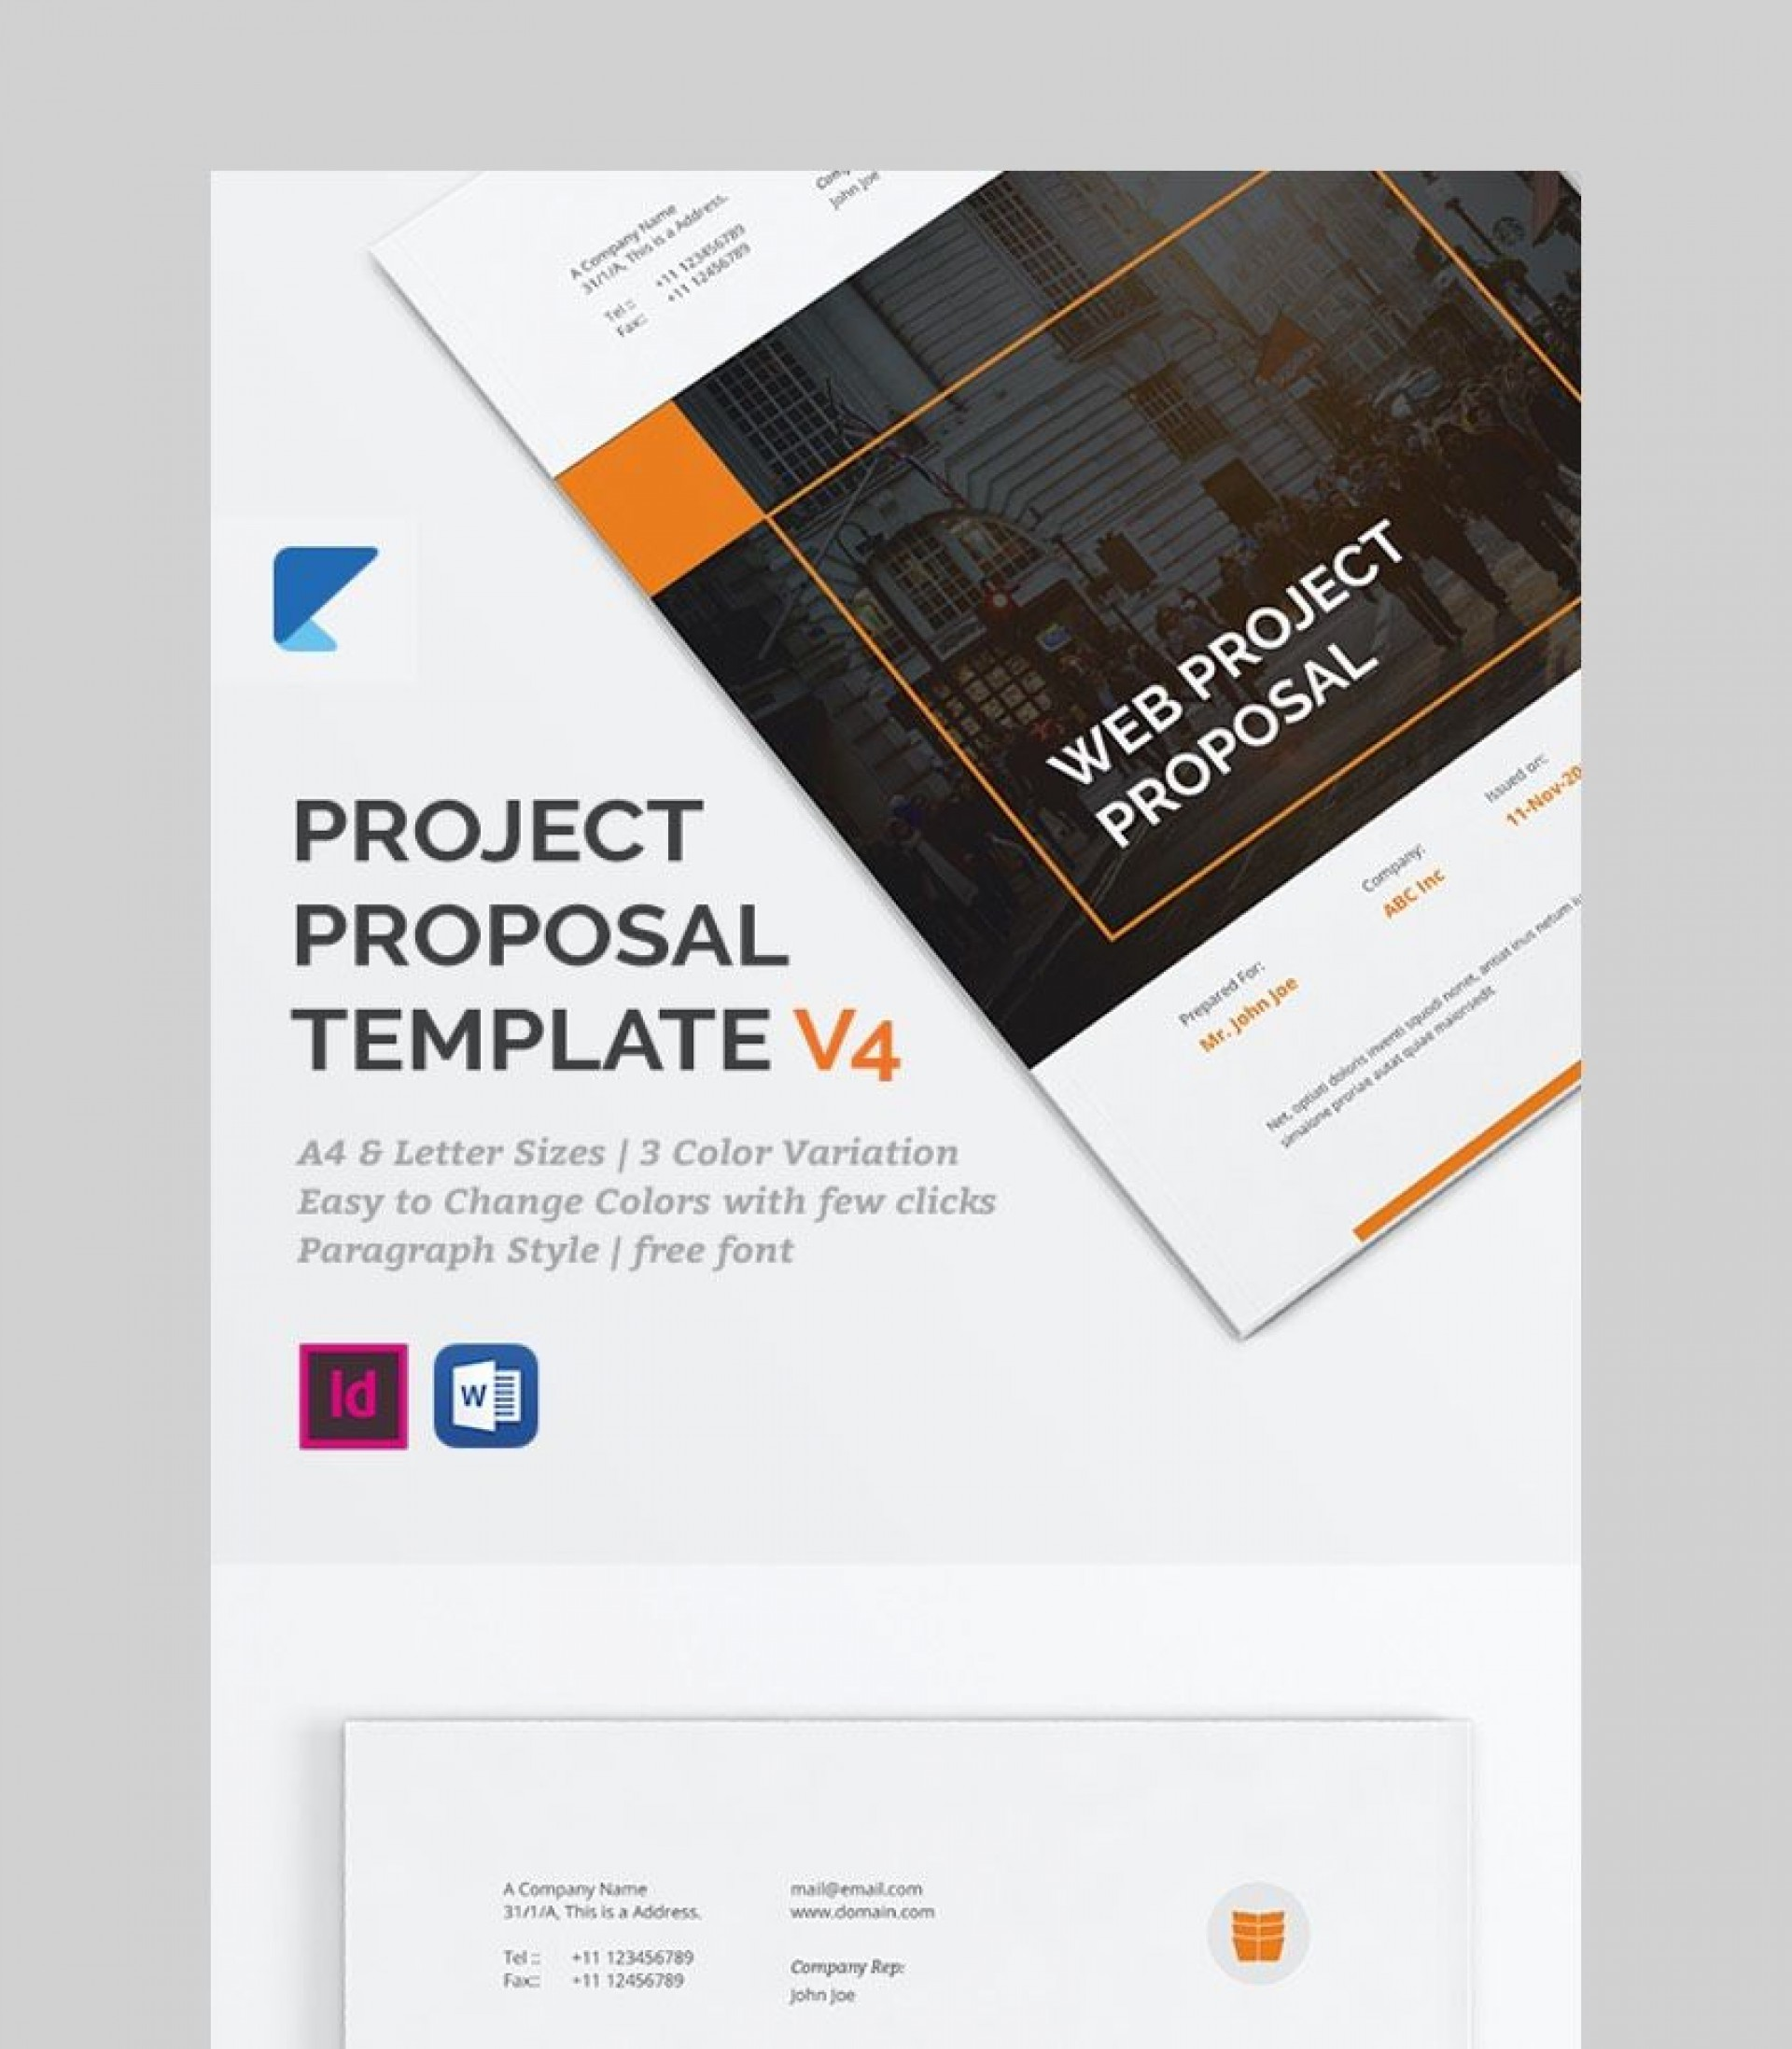 011 Unbelievable Free Project Proposal Template Image  Document Ppt Pdf1920